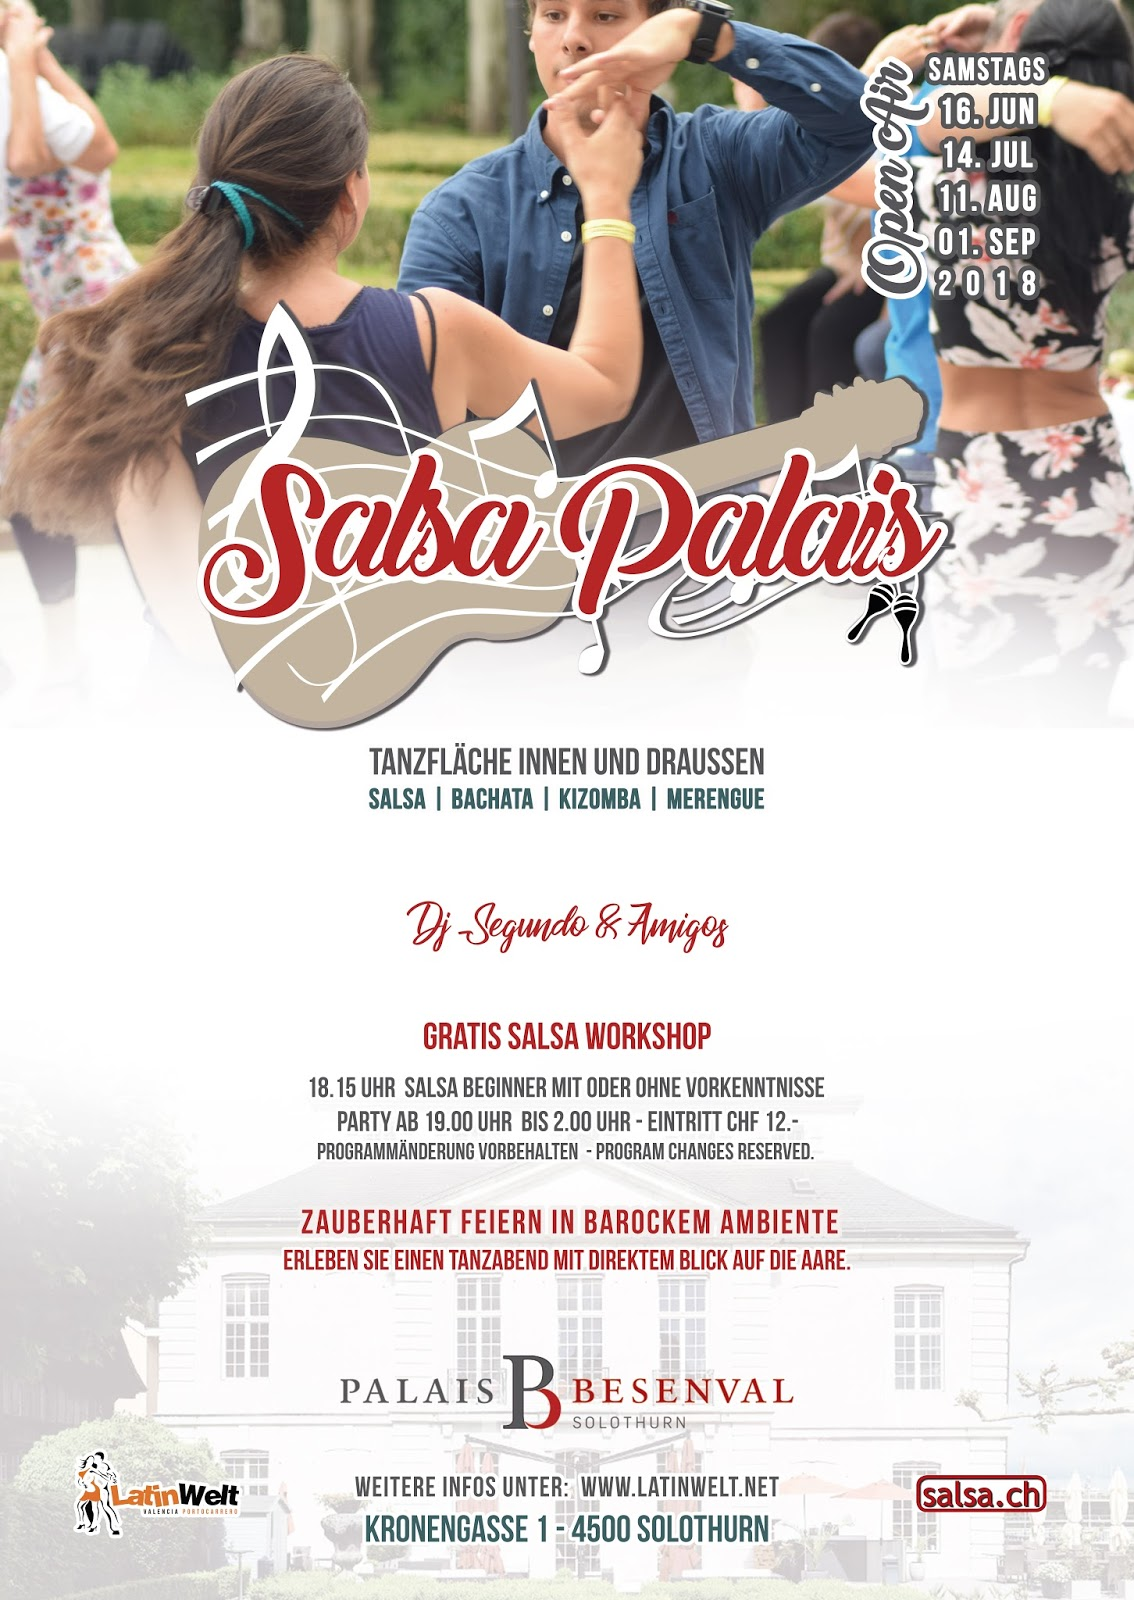 SALSA PALAIS OPEN AIR 2018